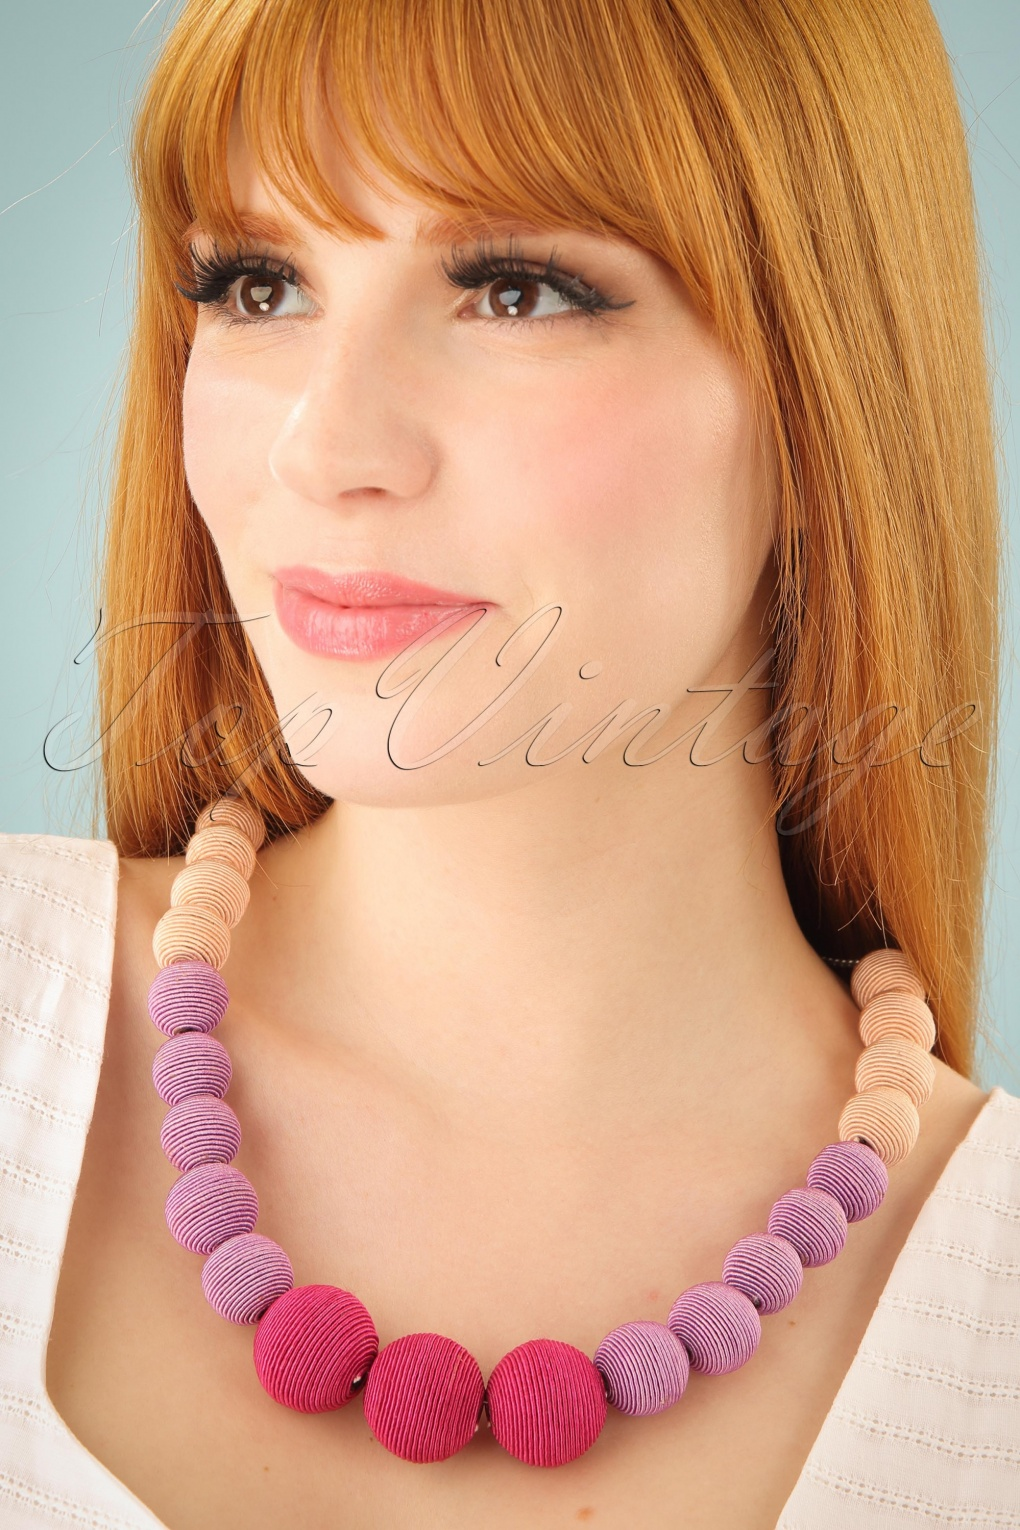 Vintage Style Jewelry, Retro Jewelry 60s Beauty and The Beads Necklace in Pink £17.49 AT vintagedancer.com